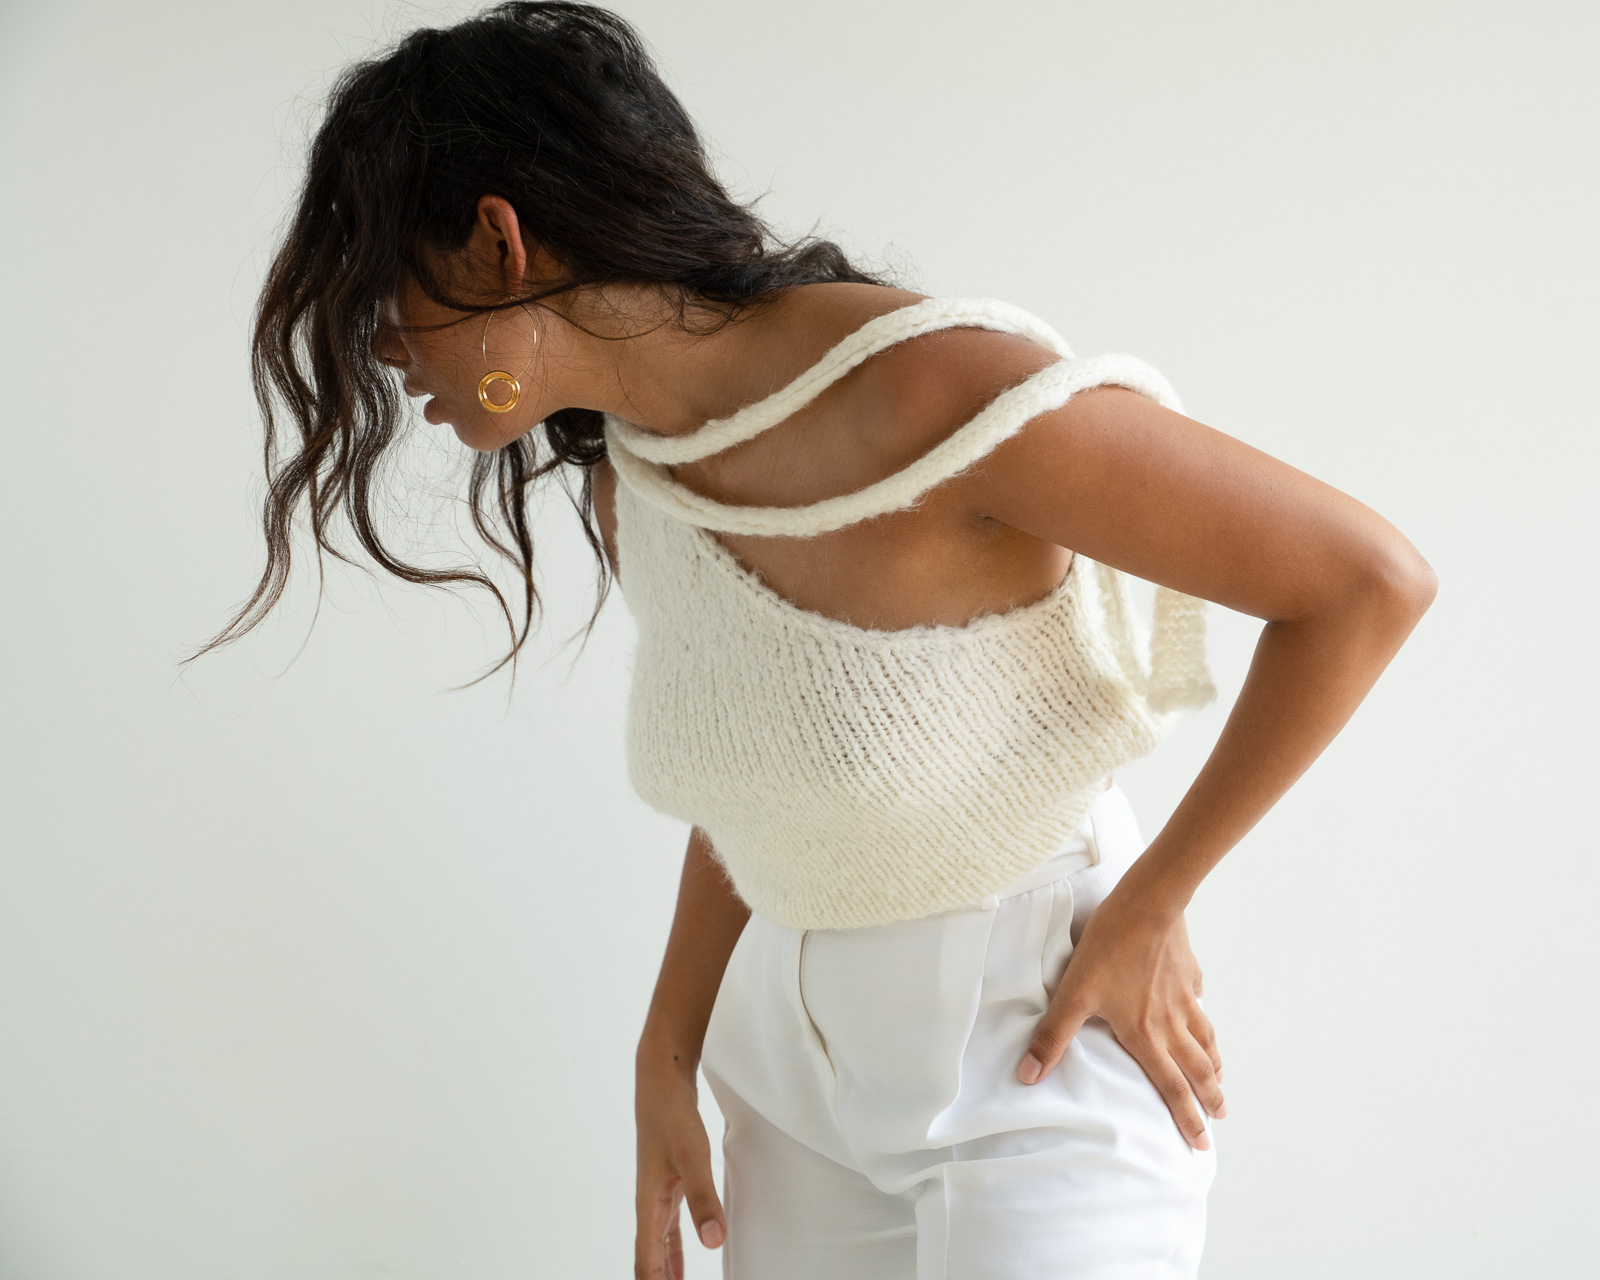 Storm wes wears malaika Raiss white pants combined with knit top and gold earrings detail shot